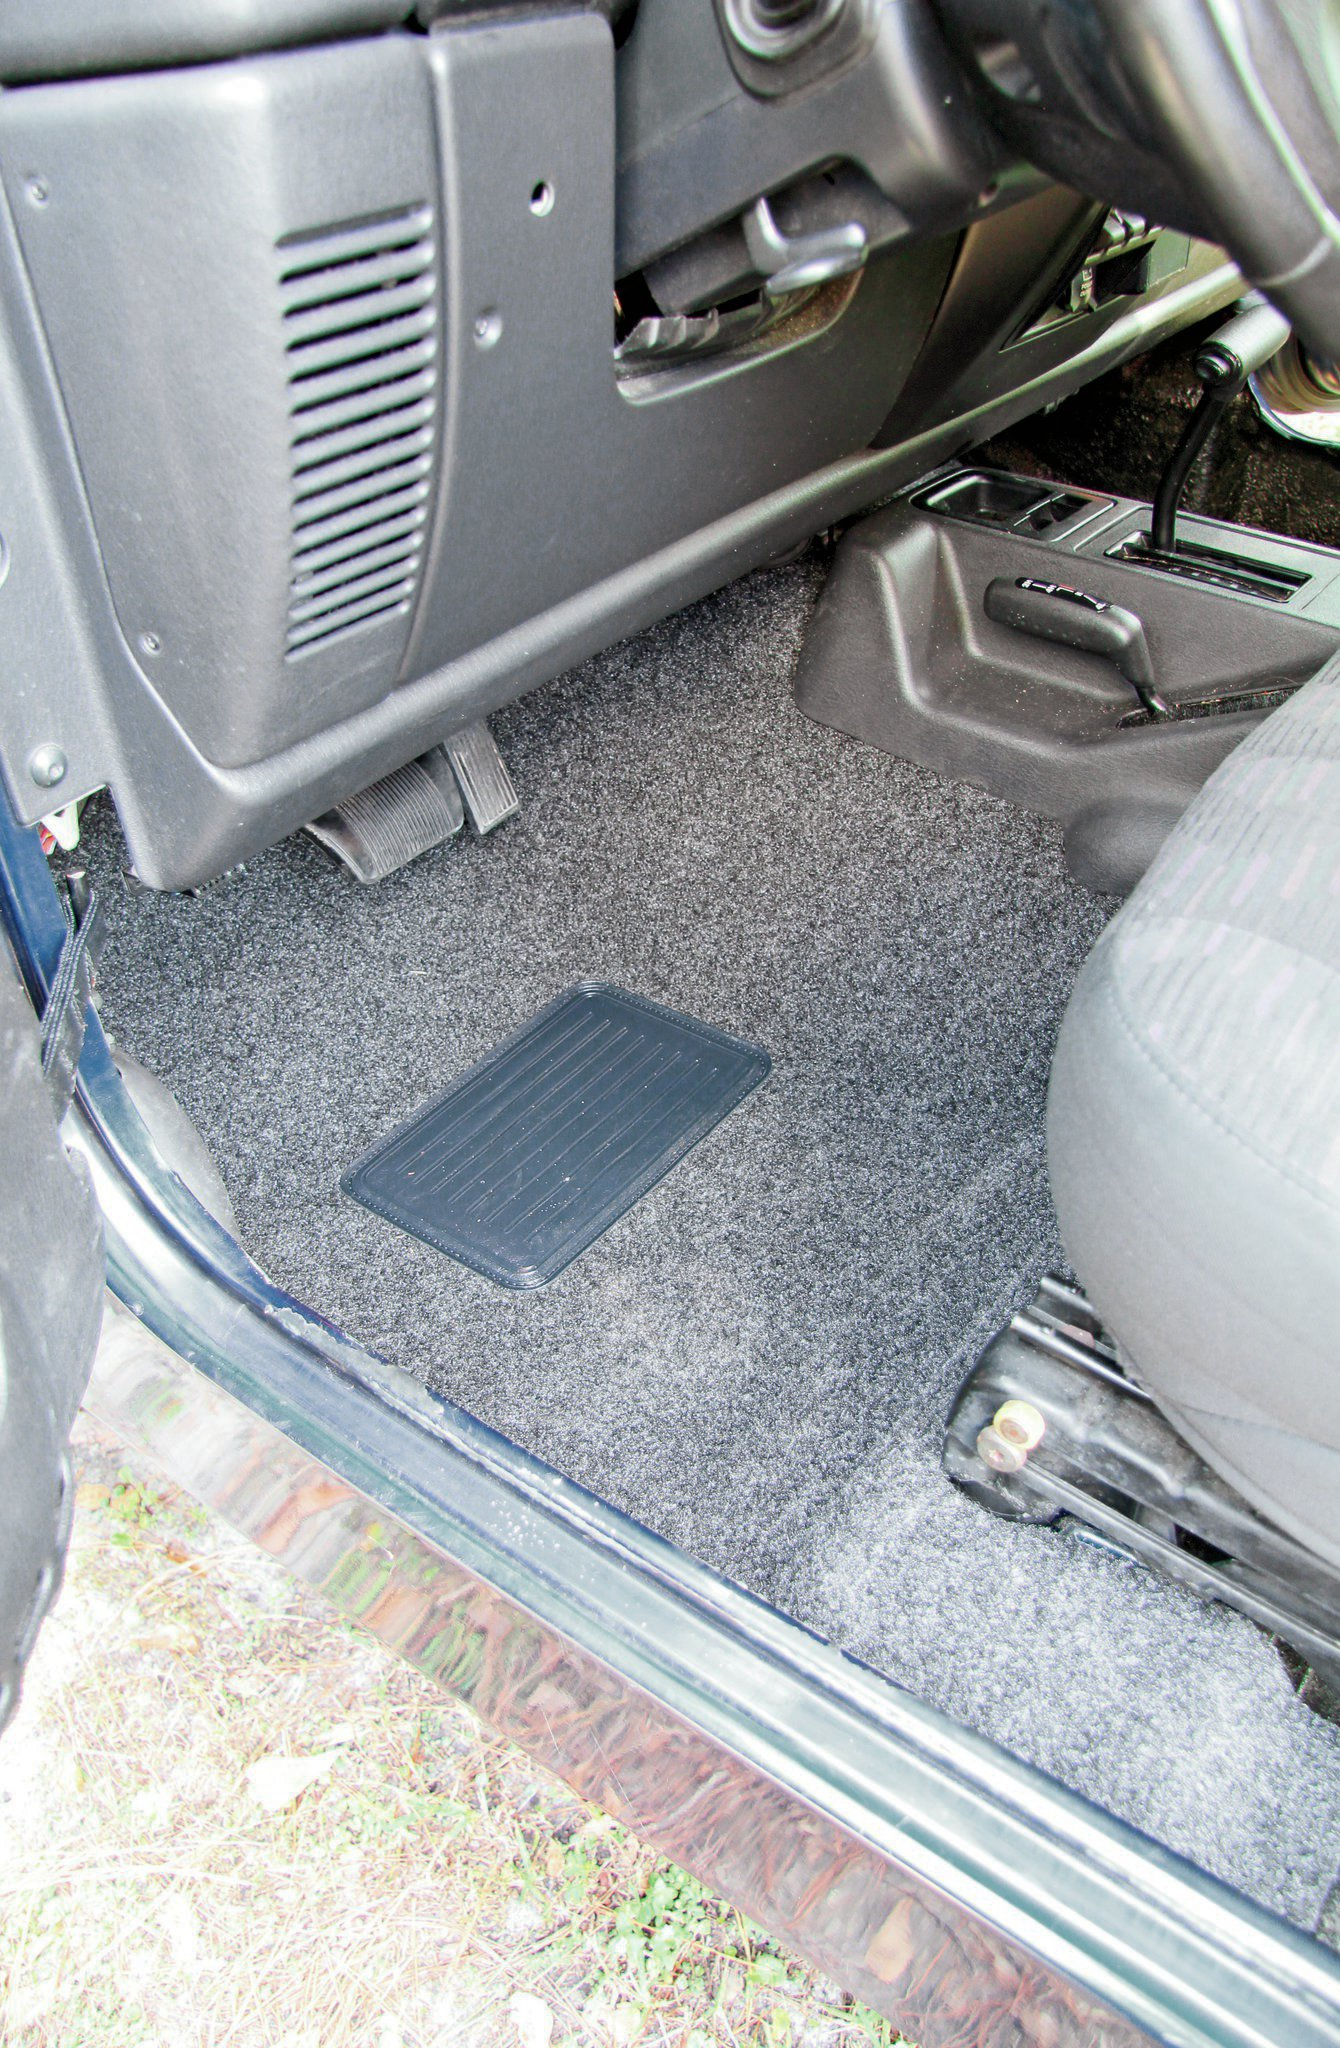 We've had carpet kits in the past that didn't fit well, so we were initially skeptical at how well the BedRug would fit. After we got the kit in place, all of our fears went away. While it takes a little nudging to get it snug under the seats and center console, the end result is a stock-like fitment.